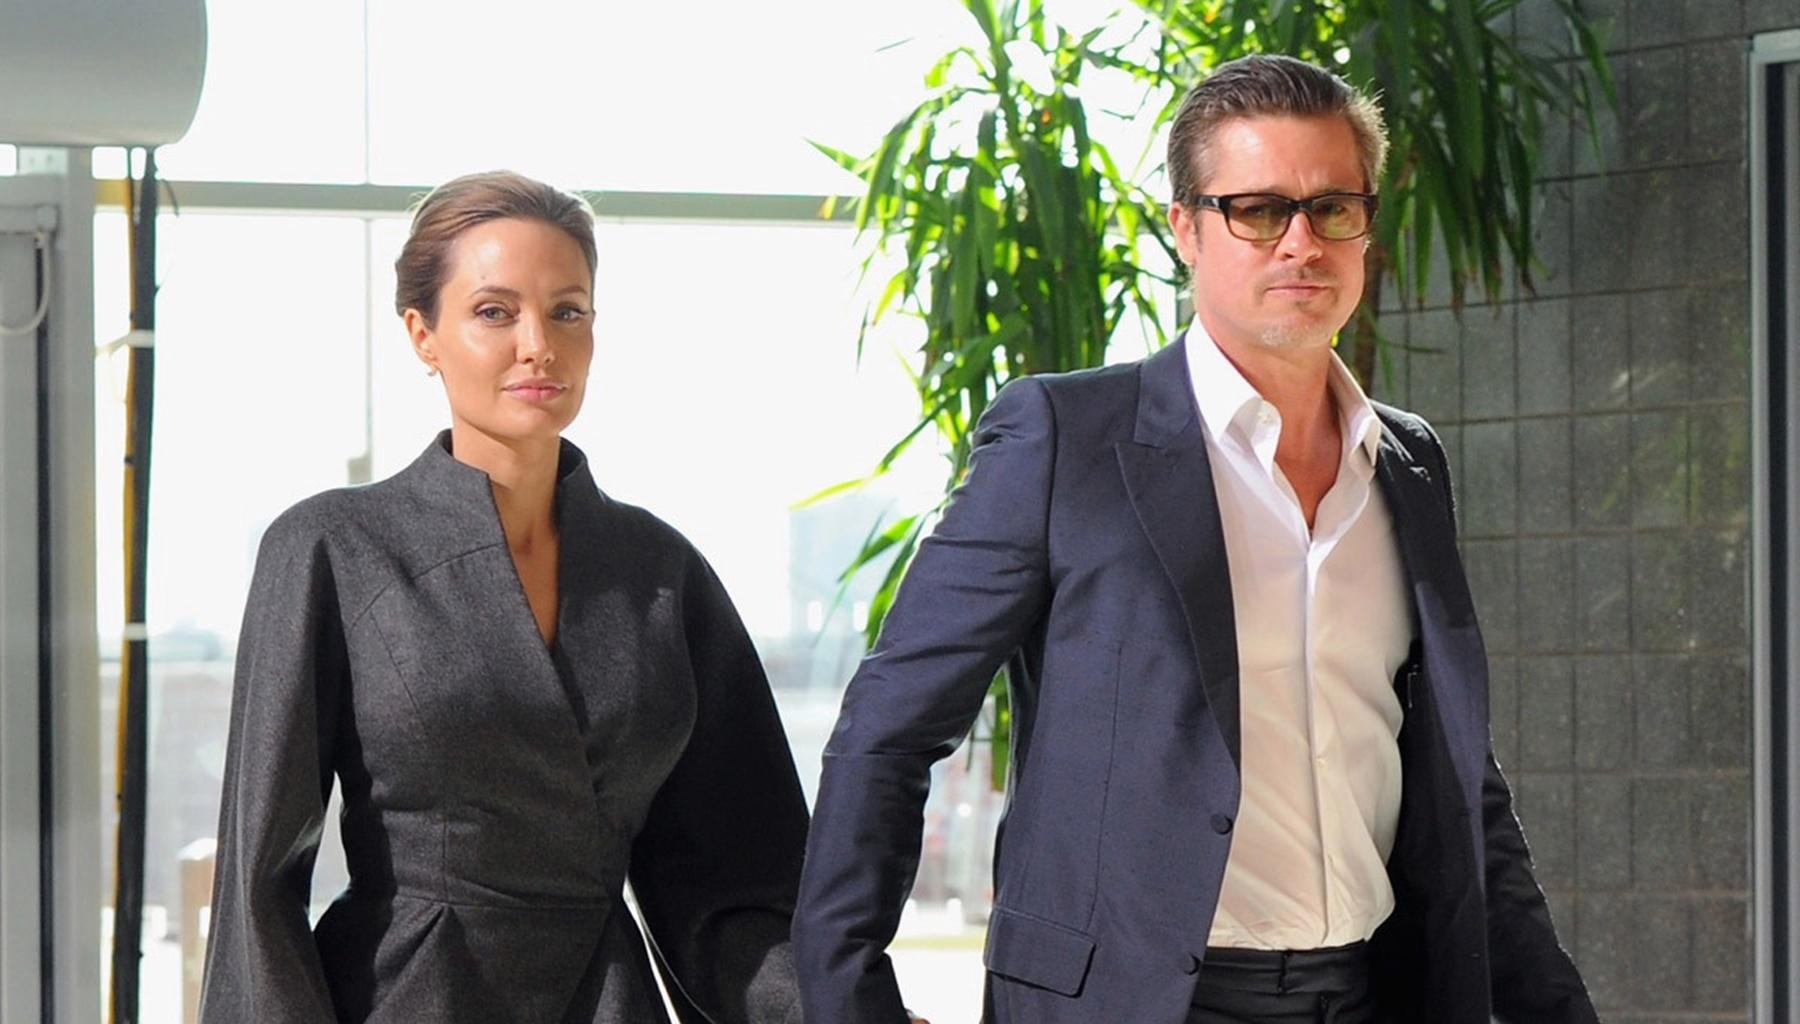 Brad Pitt Hopes To Go Public With His New Girlfriend -- He Wants Angelina Jolie To Set Him Free -- Is It Charlize Theron?